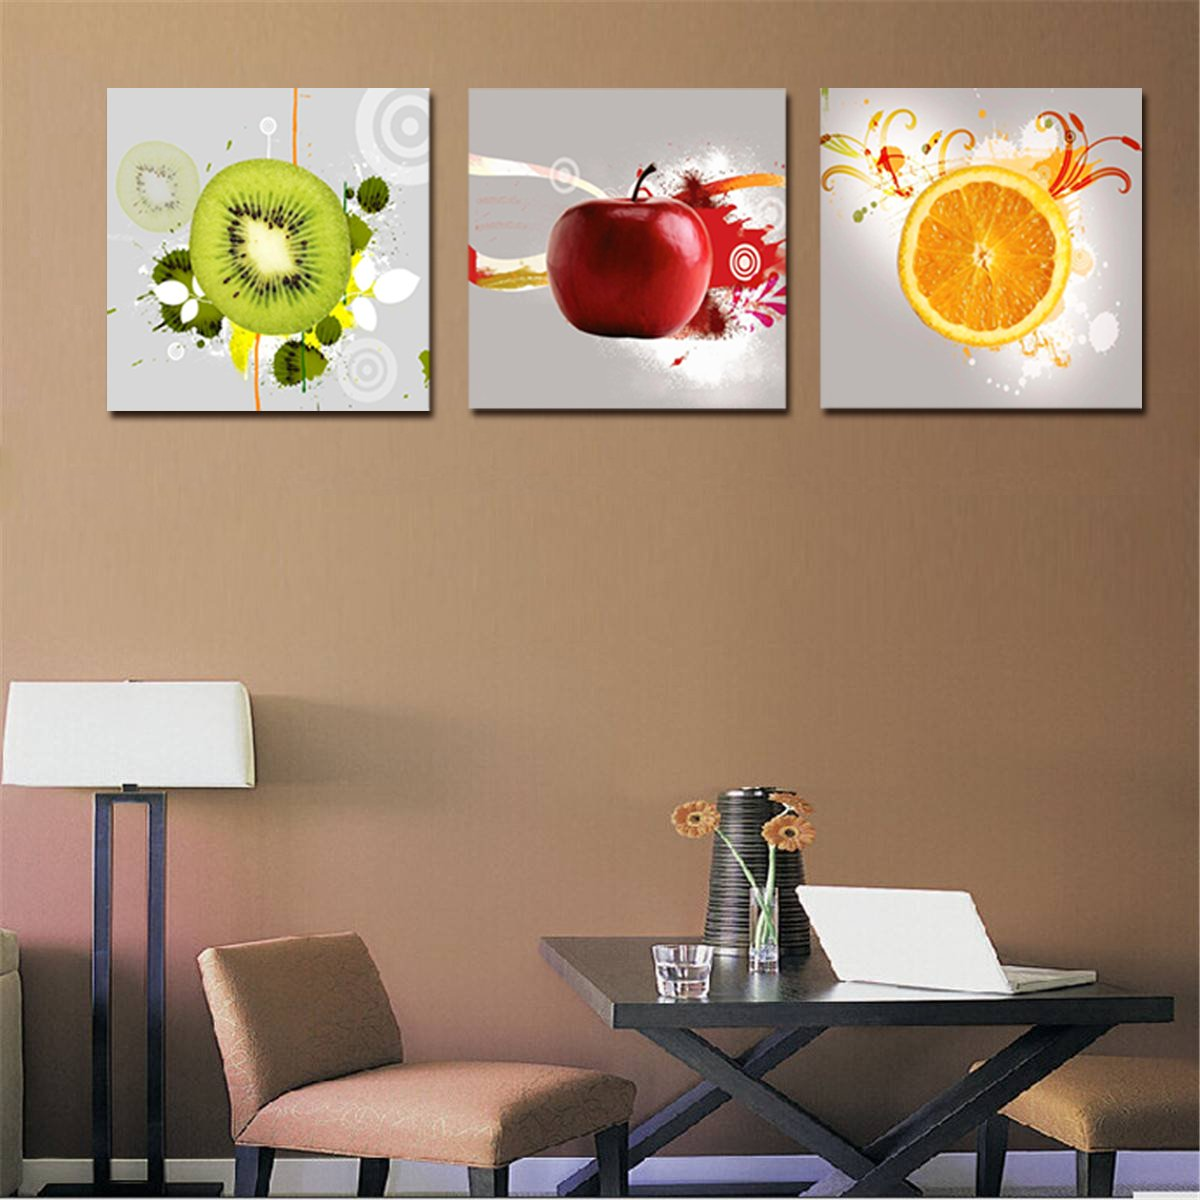 Pictures To Hang In Kitchen: Red Apple Orange Kiwi Wall Art Print Canvas Framed Kitchen